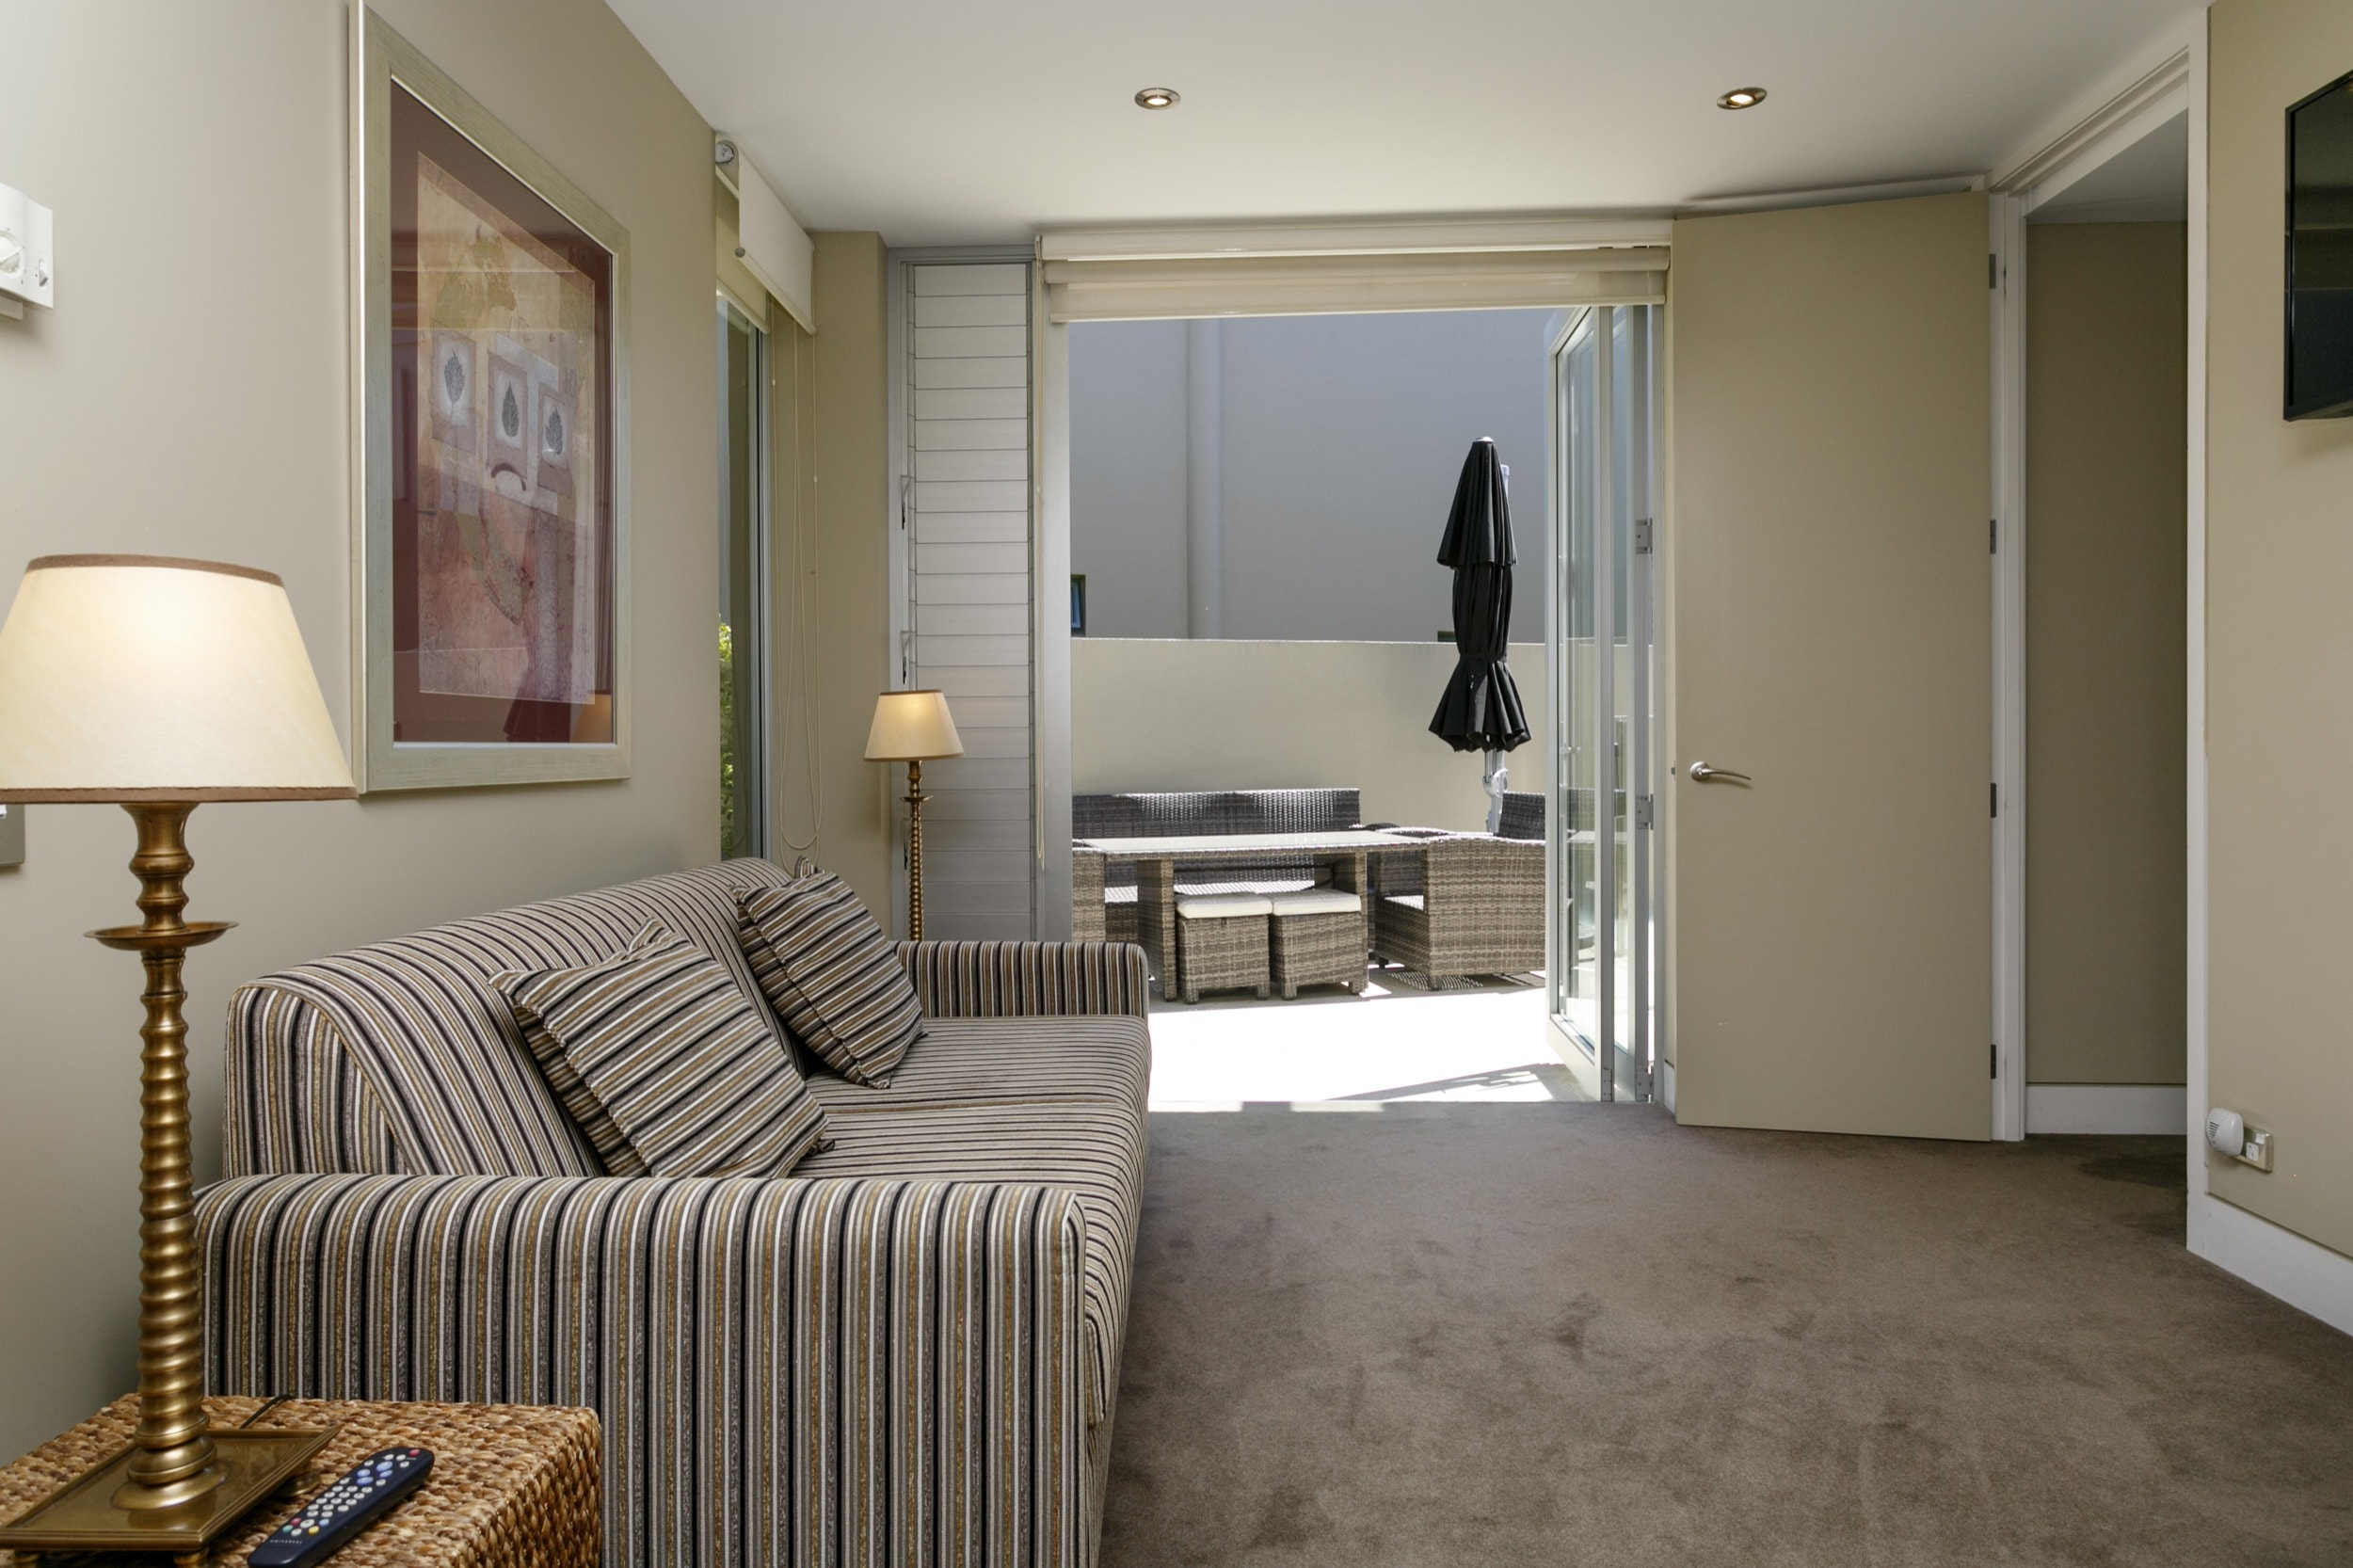 Ground floor two bedroom apartment secondary living area with sofa bed opening onto outdoor area.jpg